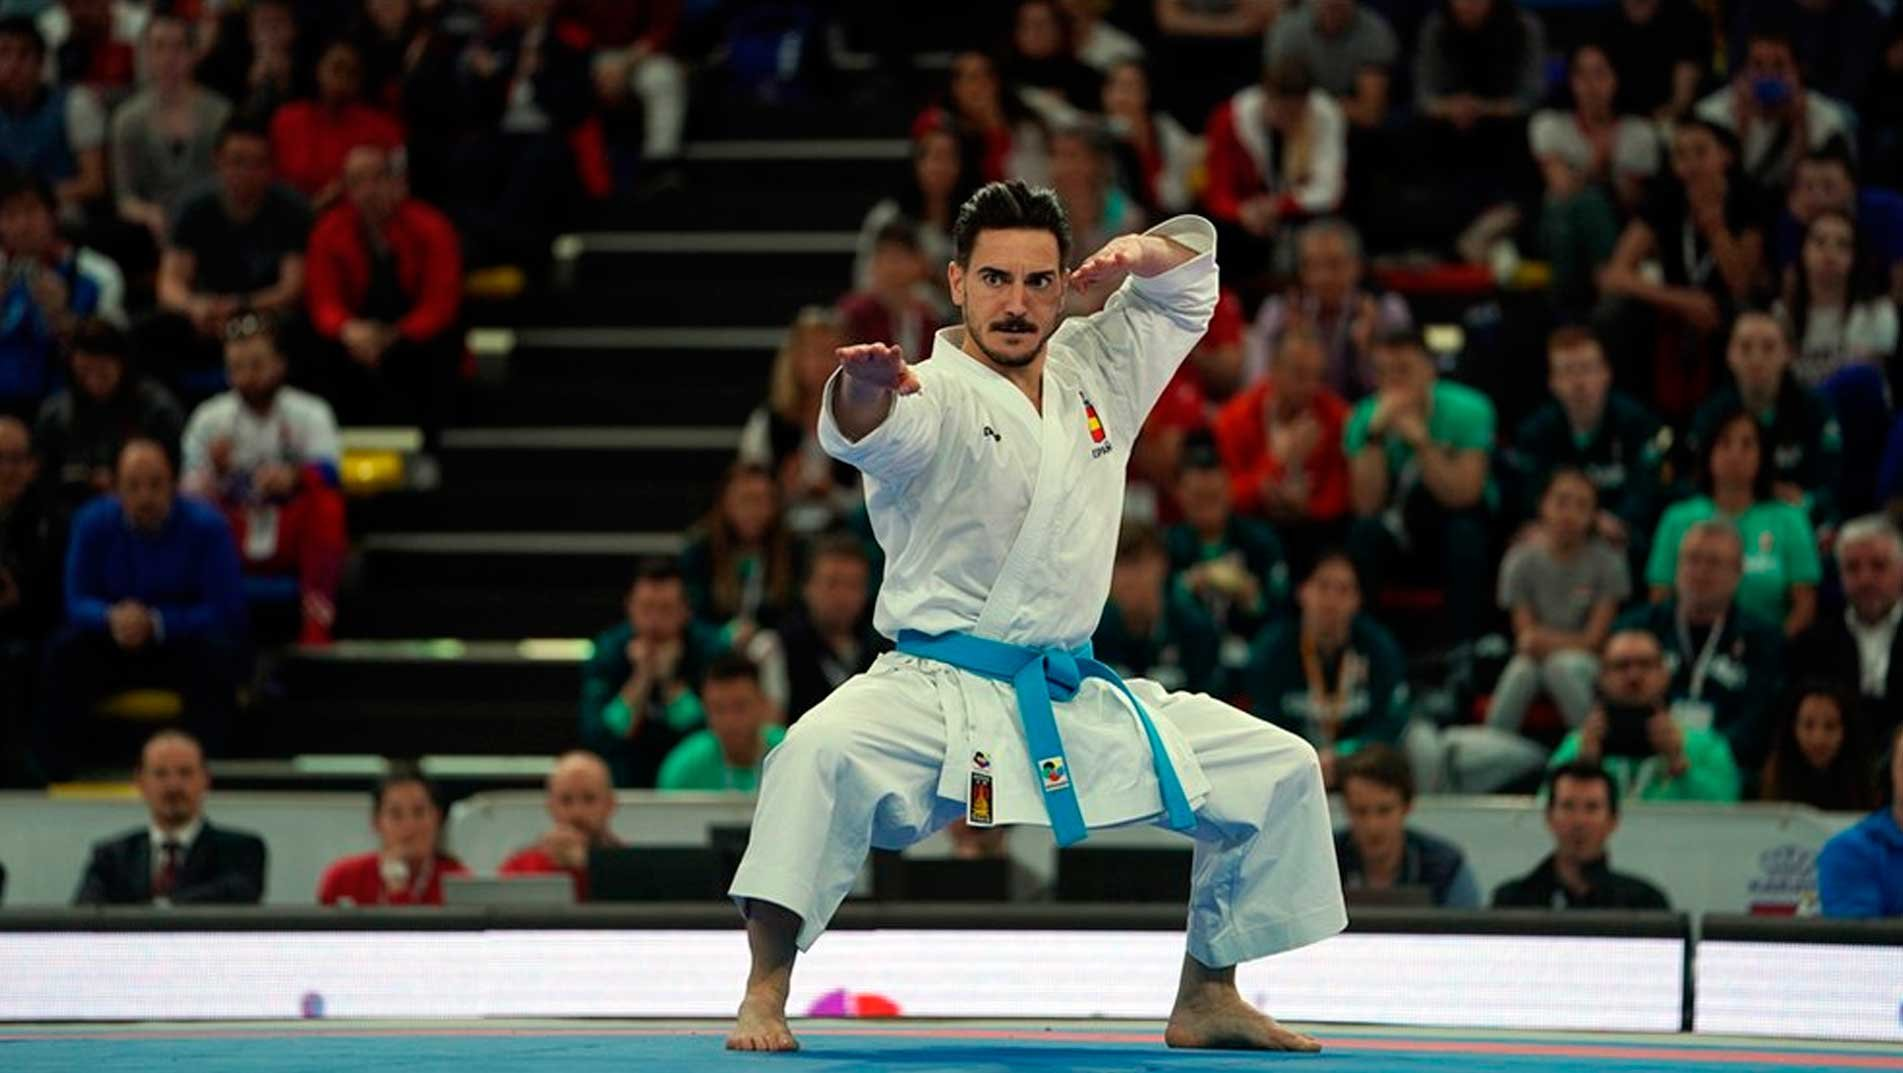 Karate heroes crowned at #EuroKarate2019 in Guadalajara